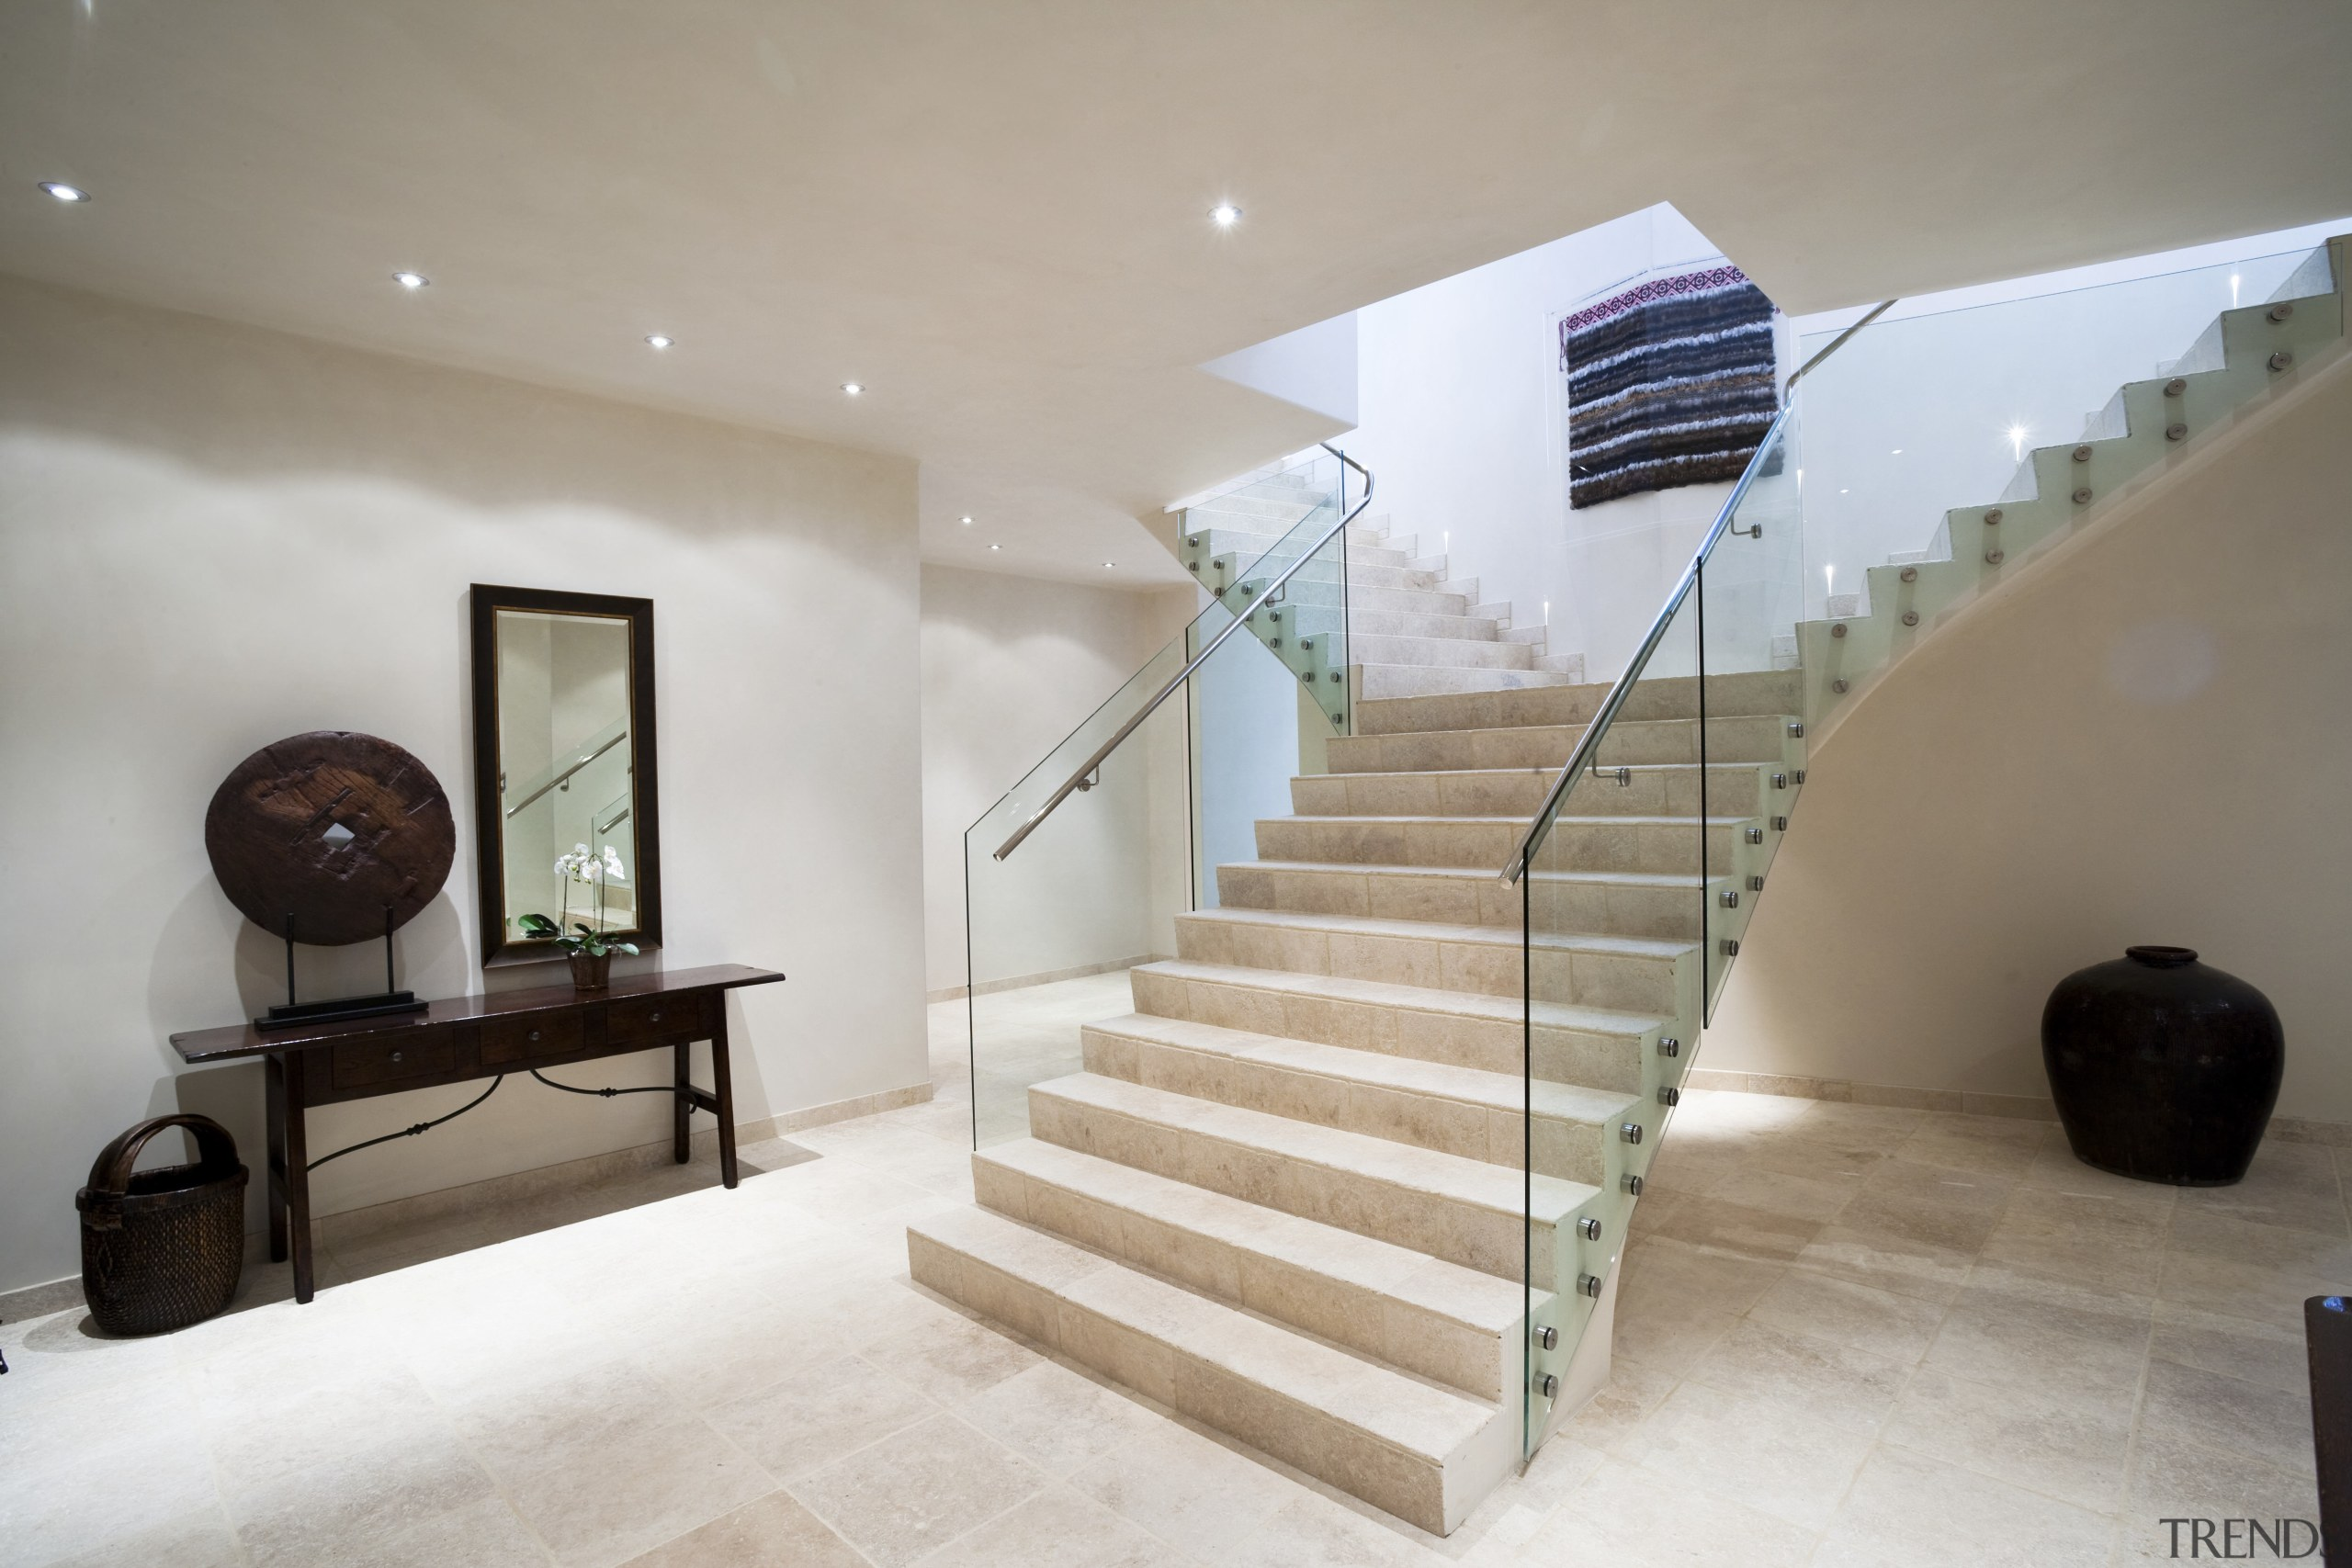 Interior view of stairway at Mediterranean styled home architecture, ceiling, estate, floor, flooring, handrail, home, house, interior design, property, real estate, stairs, gray